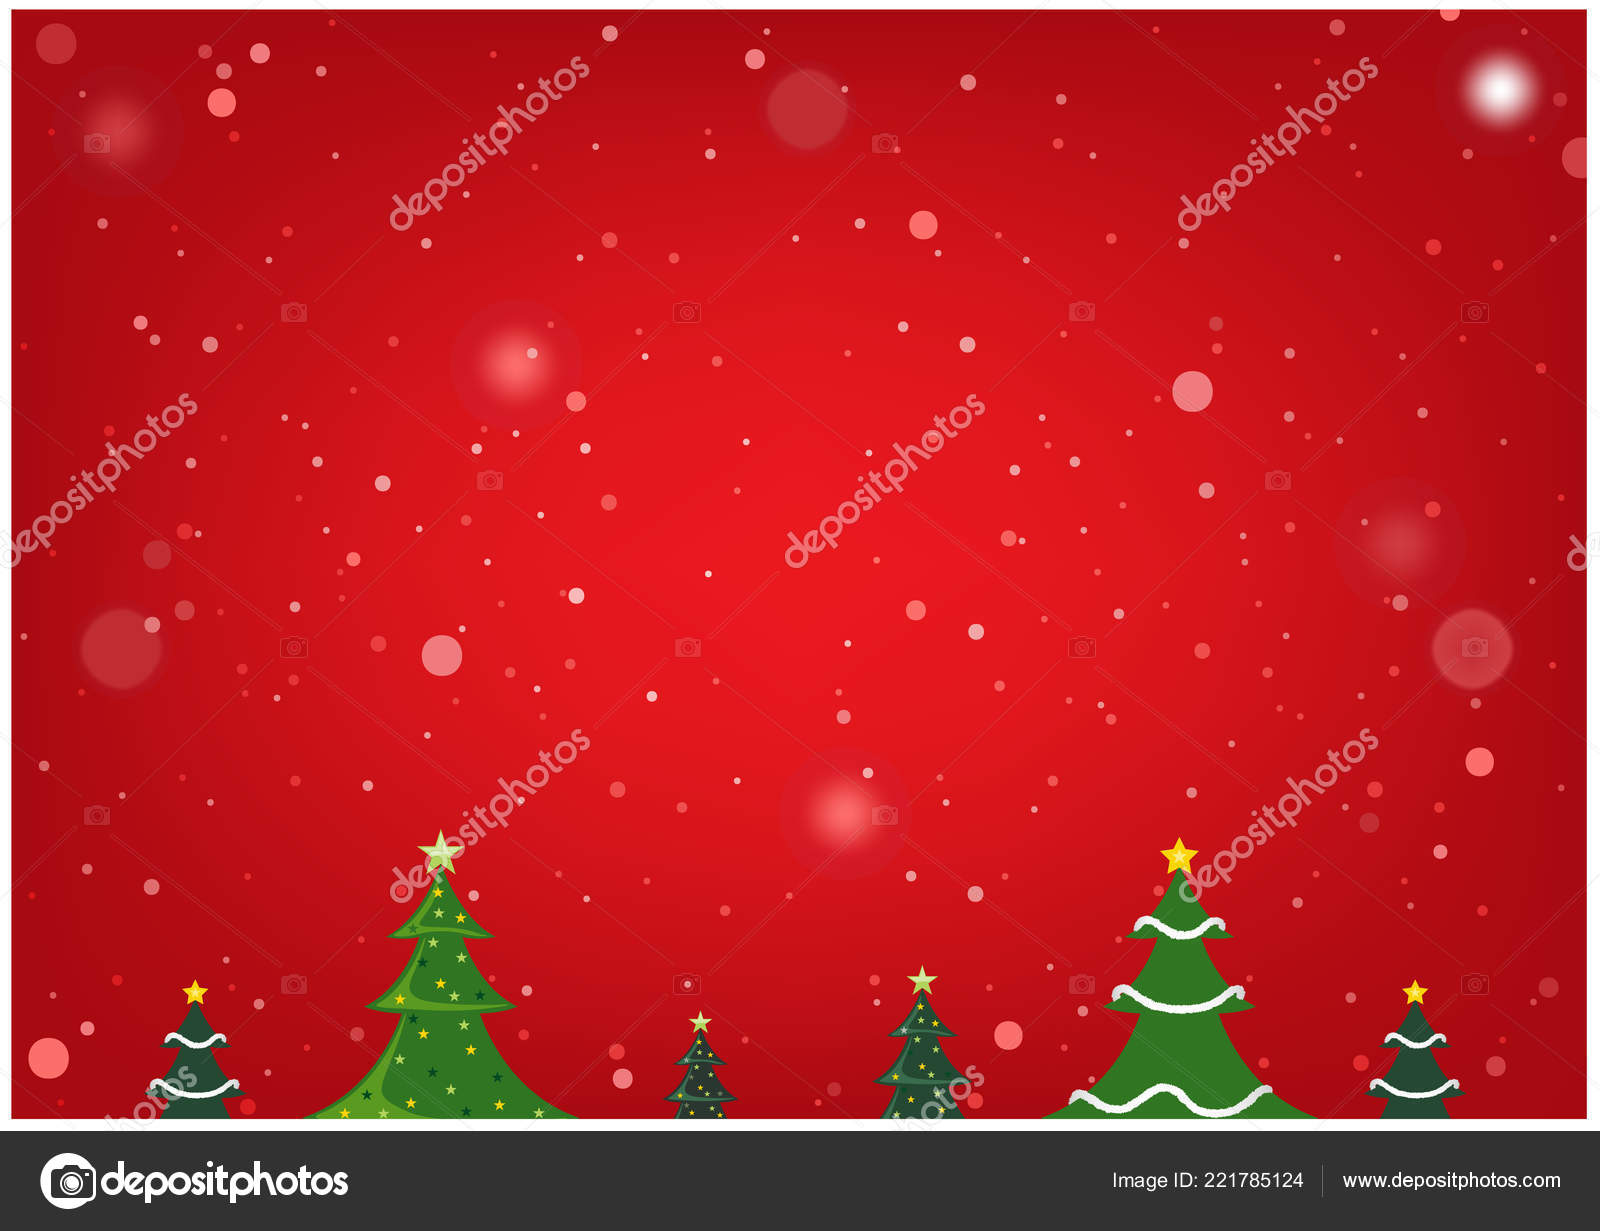 Red Christmas Background Xmas Trees Snow Abstract Simple Illustration Copy Stock Vector C Dero2010 221785124